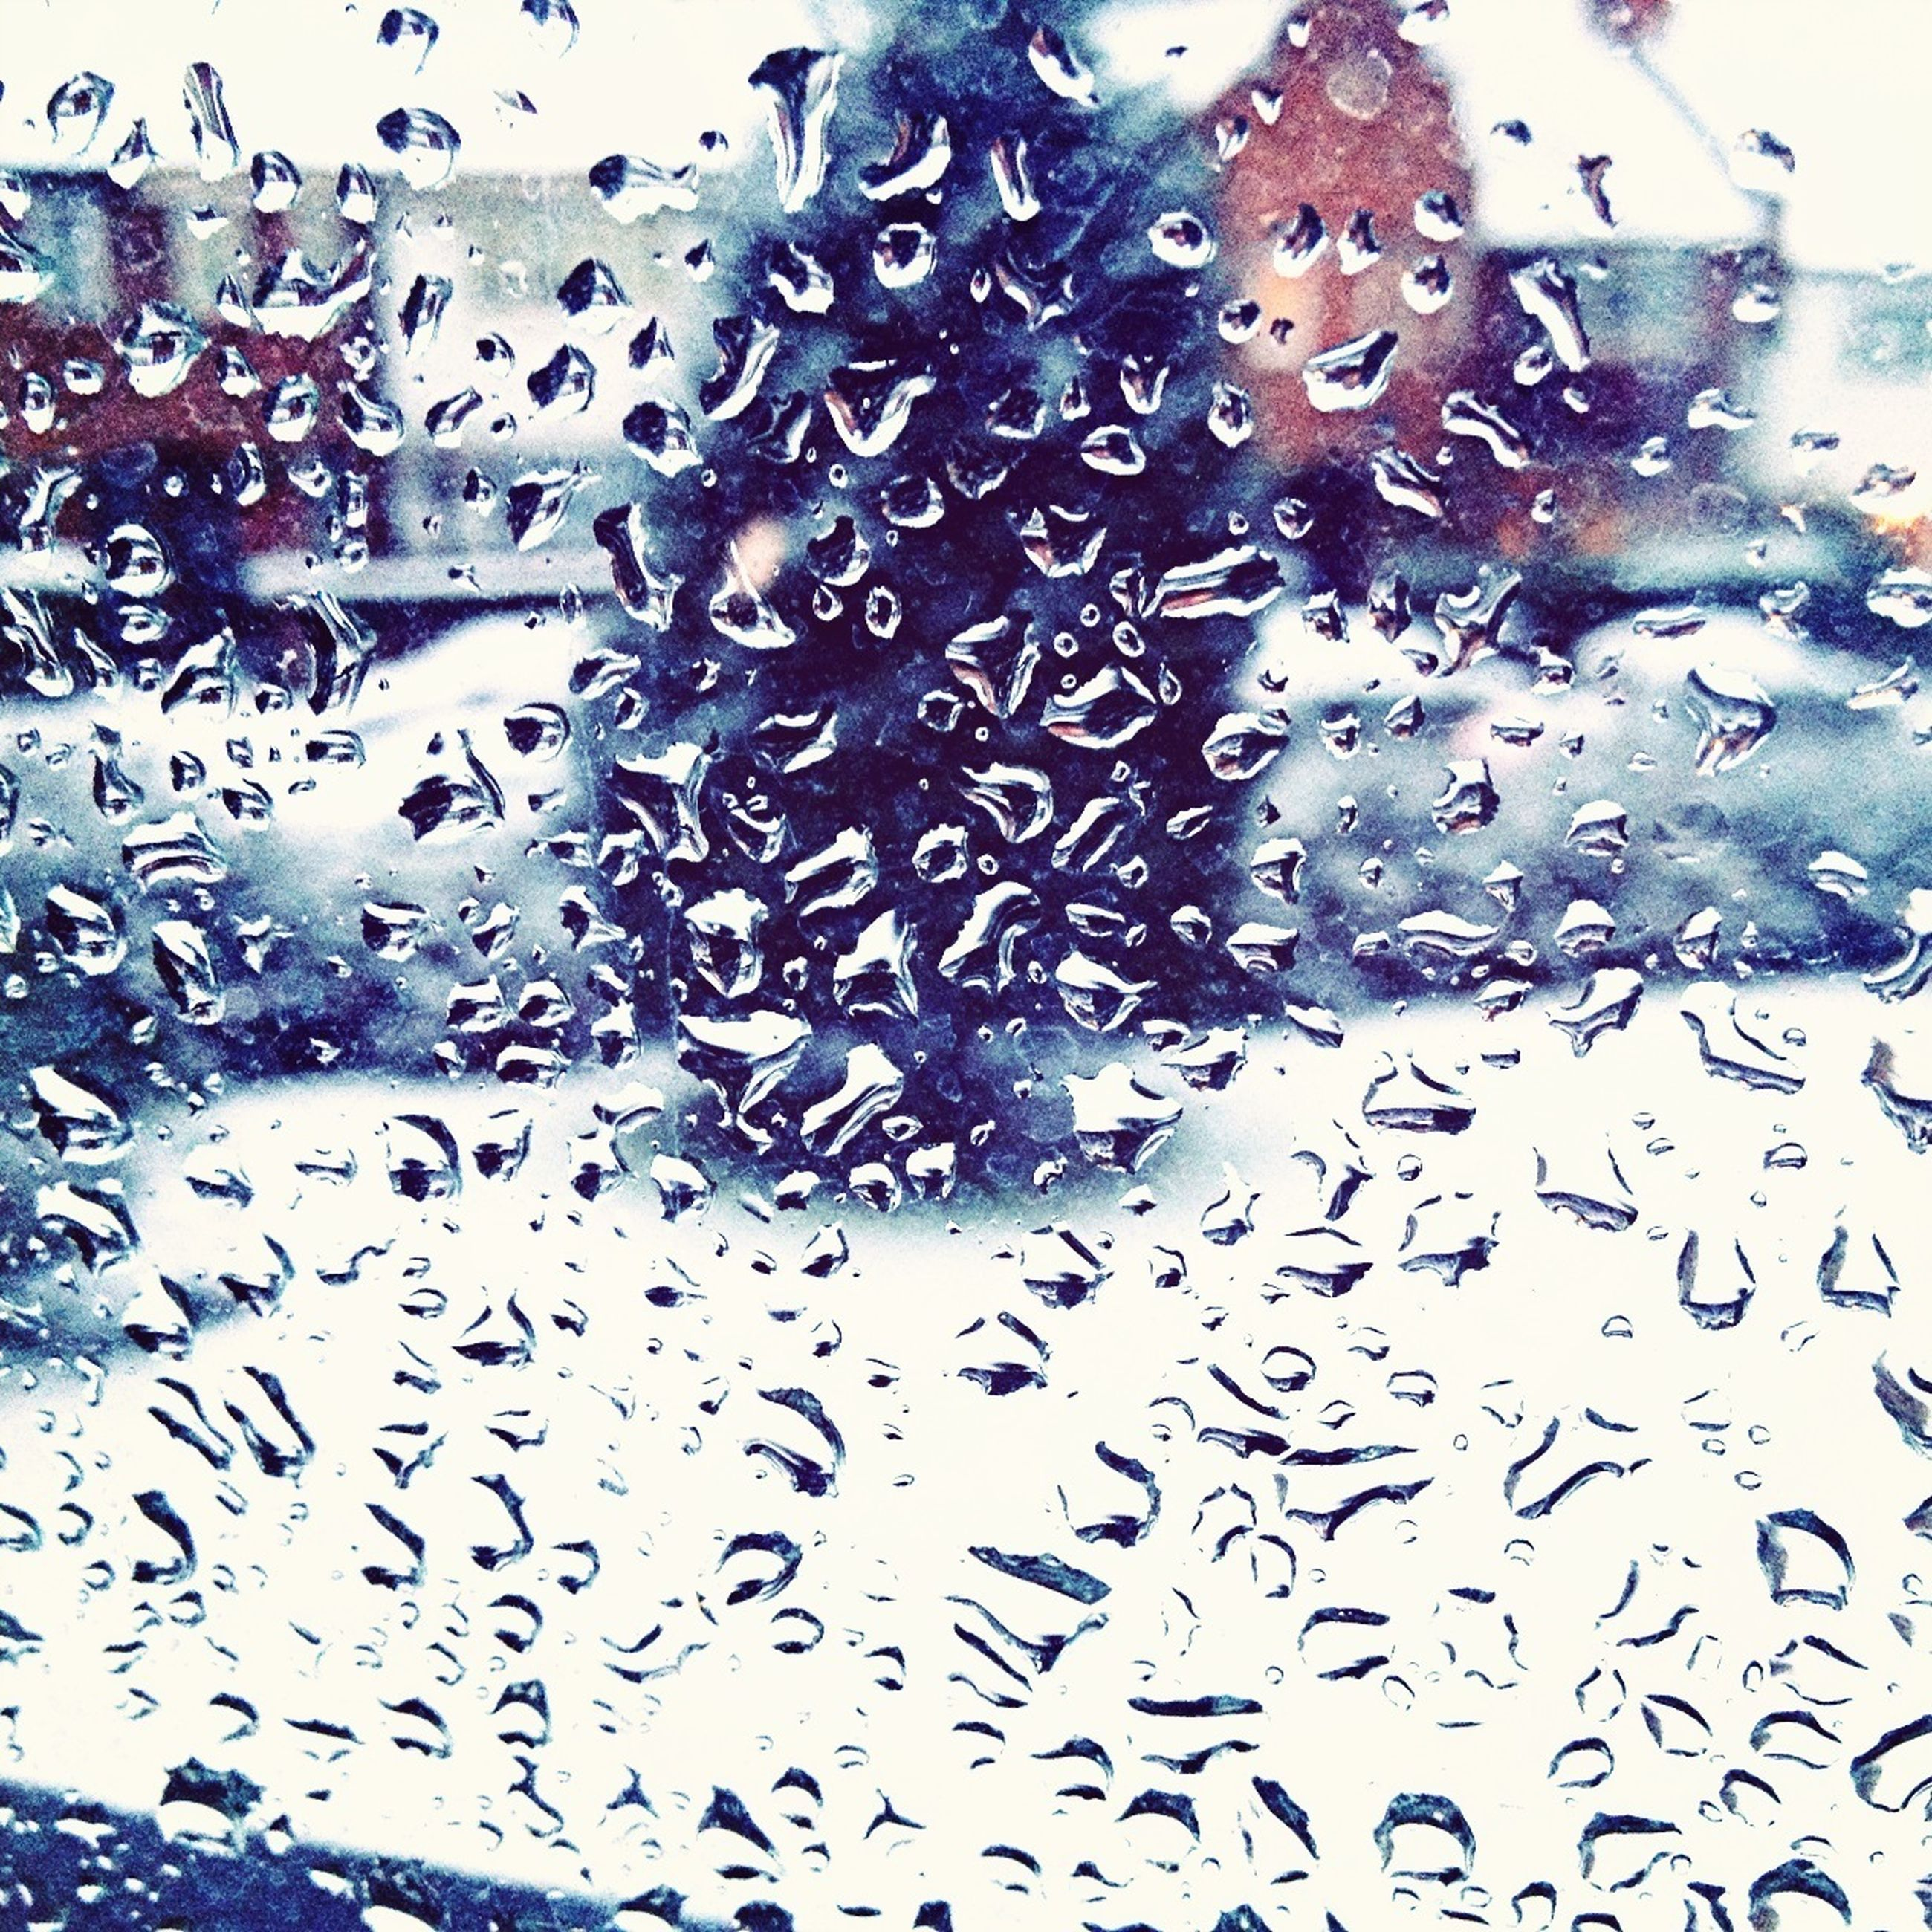 drop, wet, water, window, indoors, rain, glass - material, raindrop, transparent, season, full frame, backgrounds, weather, architecture, built structure, glass, close-up, pattern, building exterior, focus on foreground